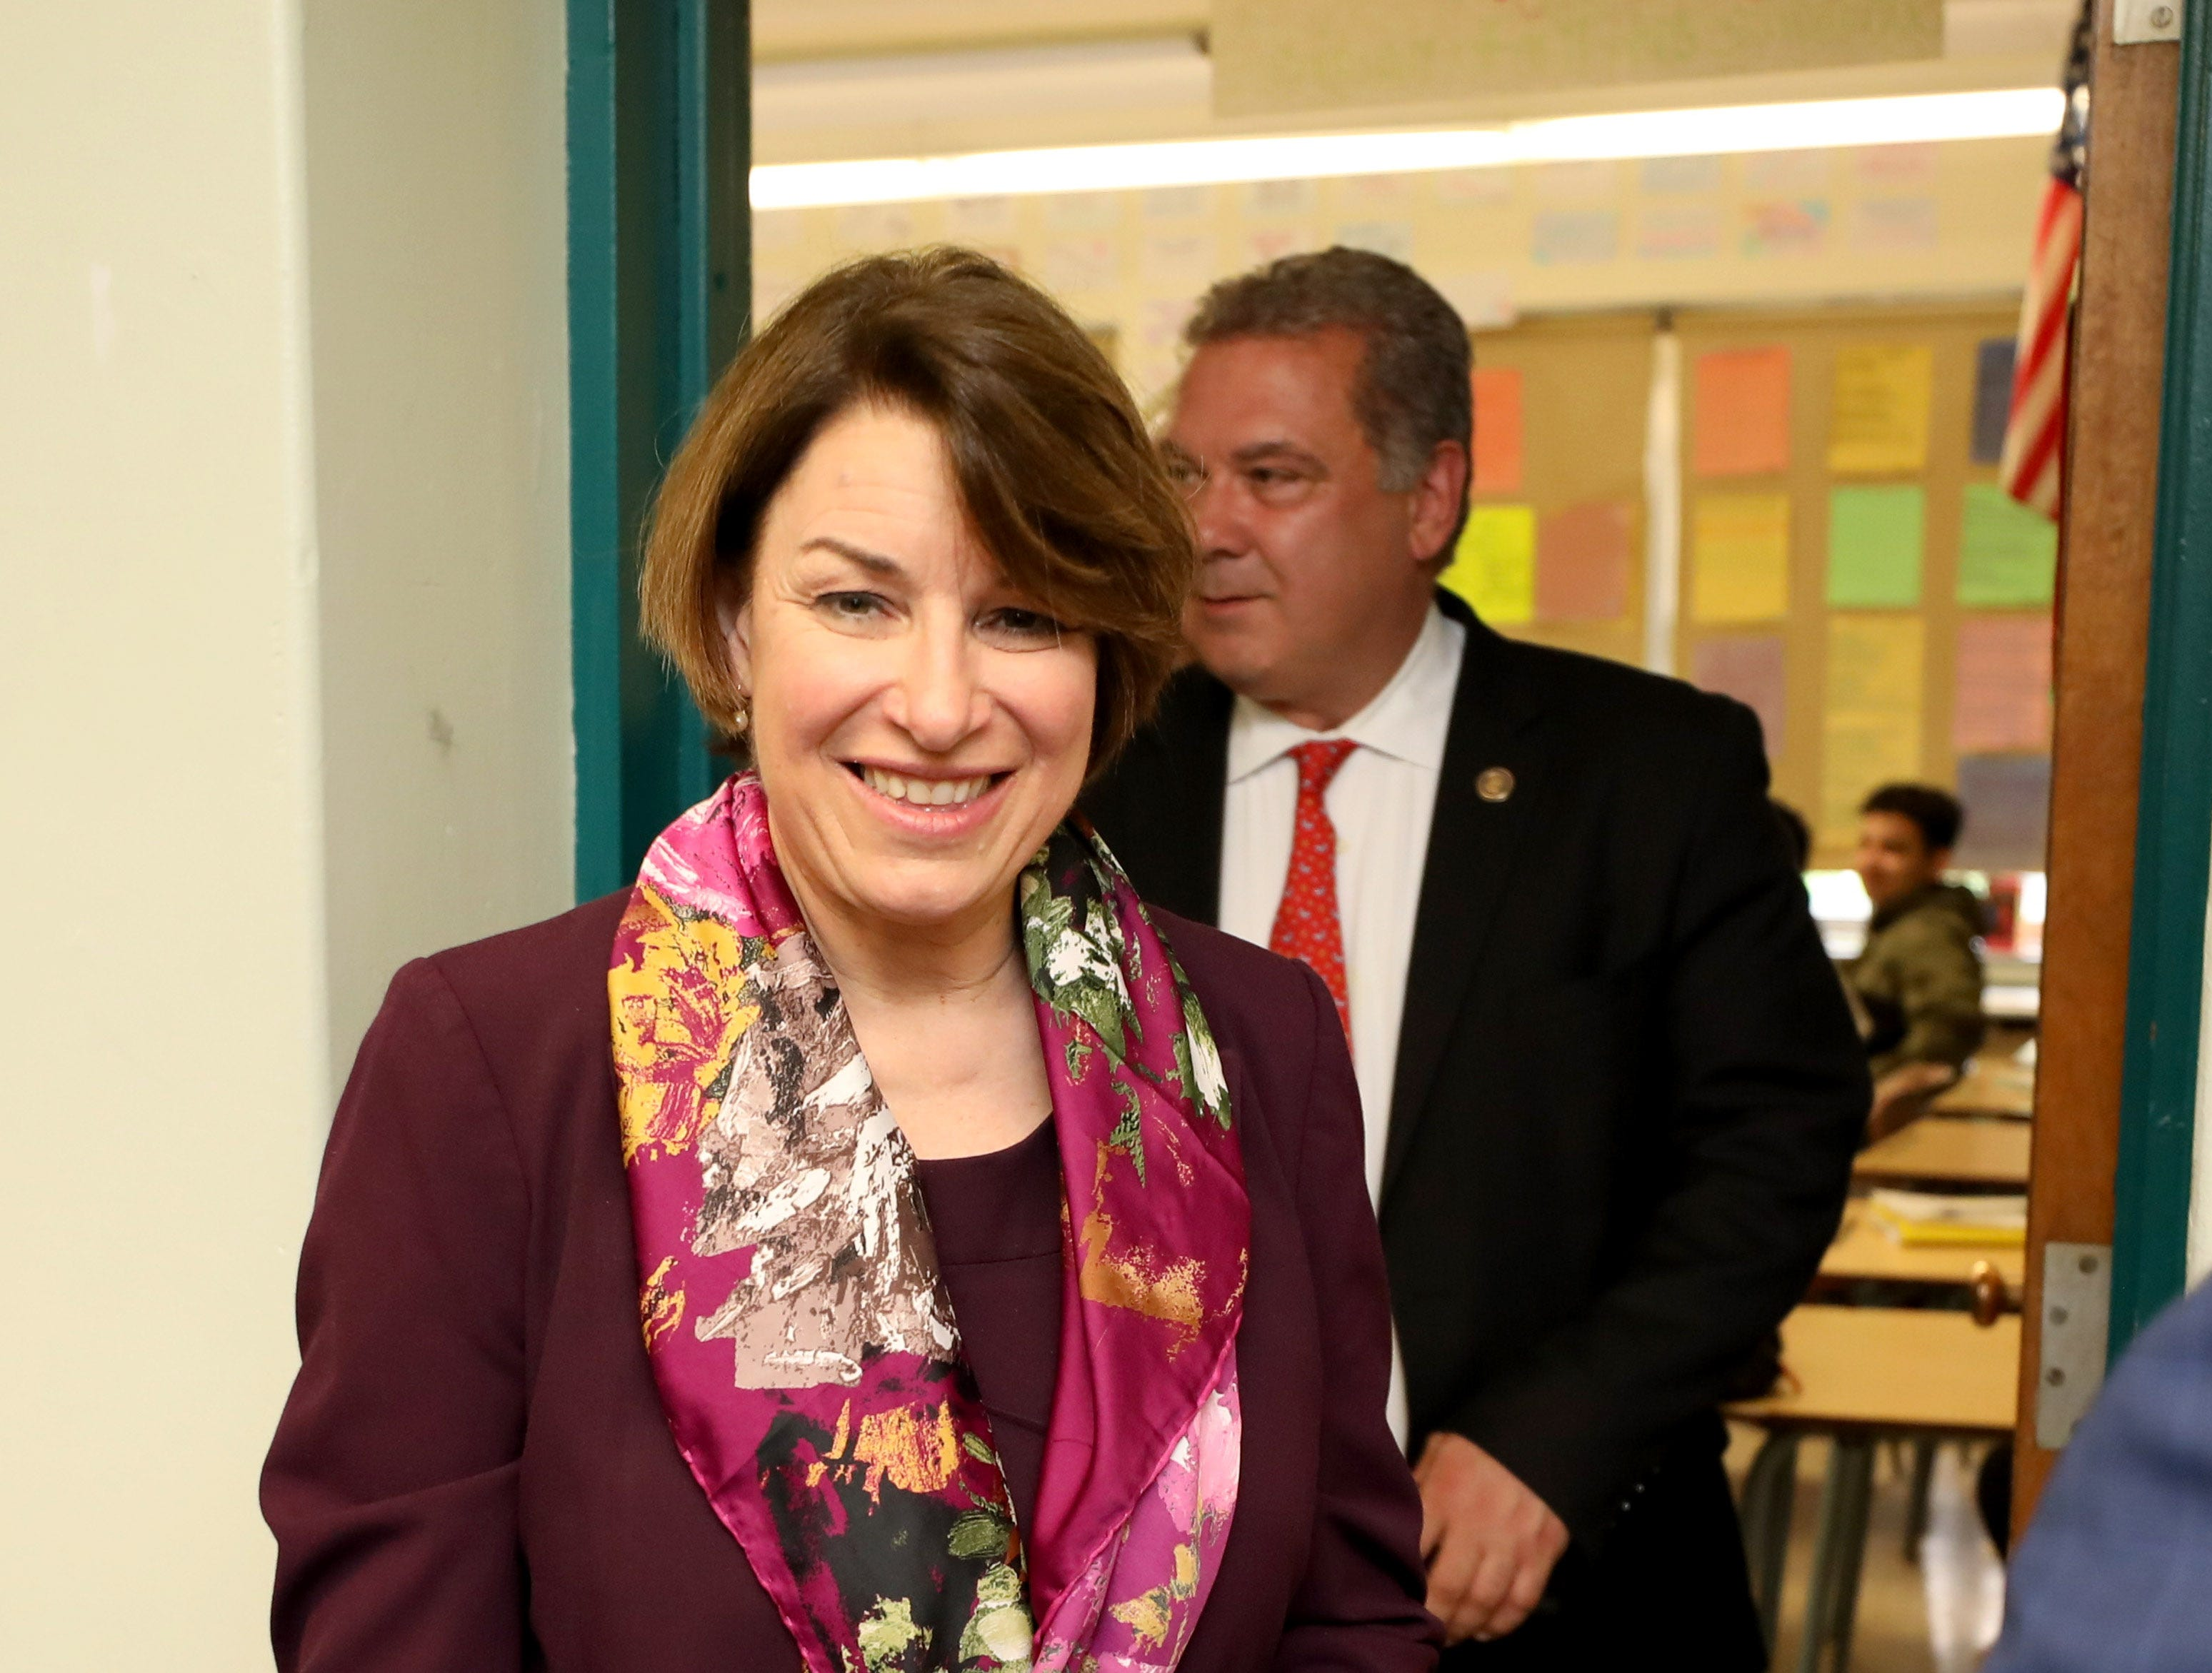 U.S. Sen. Amy Klobuchar (D-Minn.), a Democratic presidential candidate, leaves a classroom at Gorton High School in Yonkers, followed by Yonkers Mayor Mike Spano, during a tour of the school May 10, 2019.